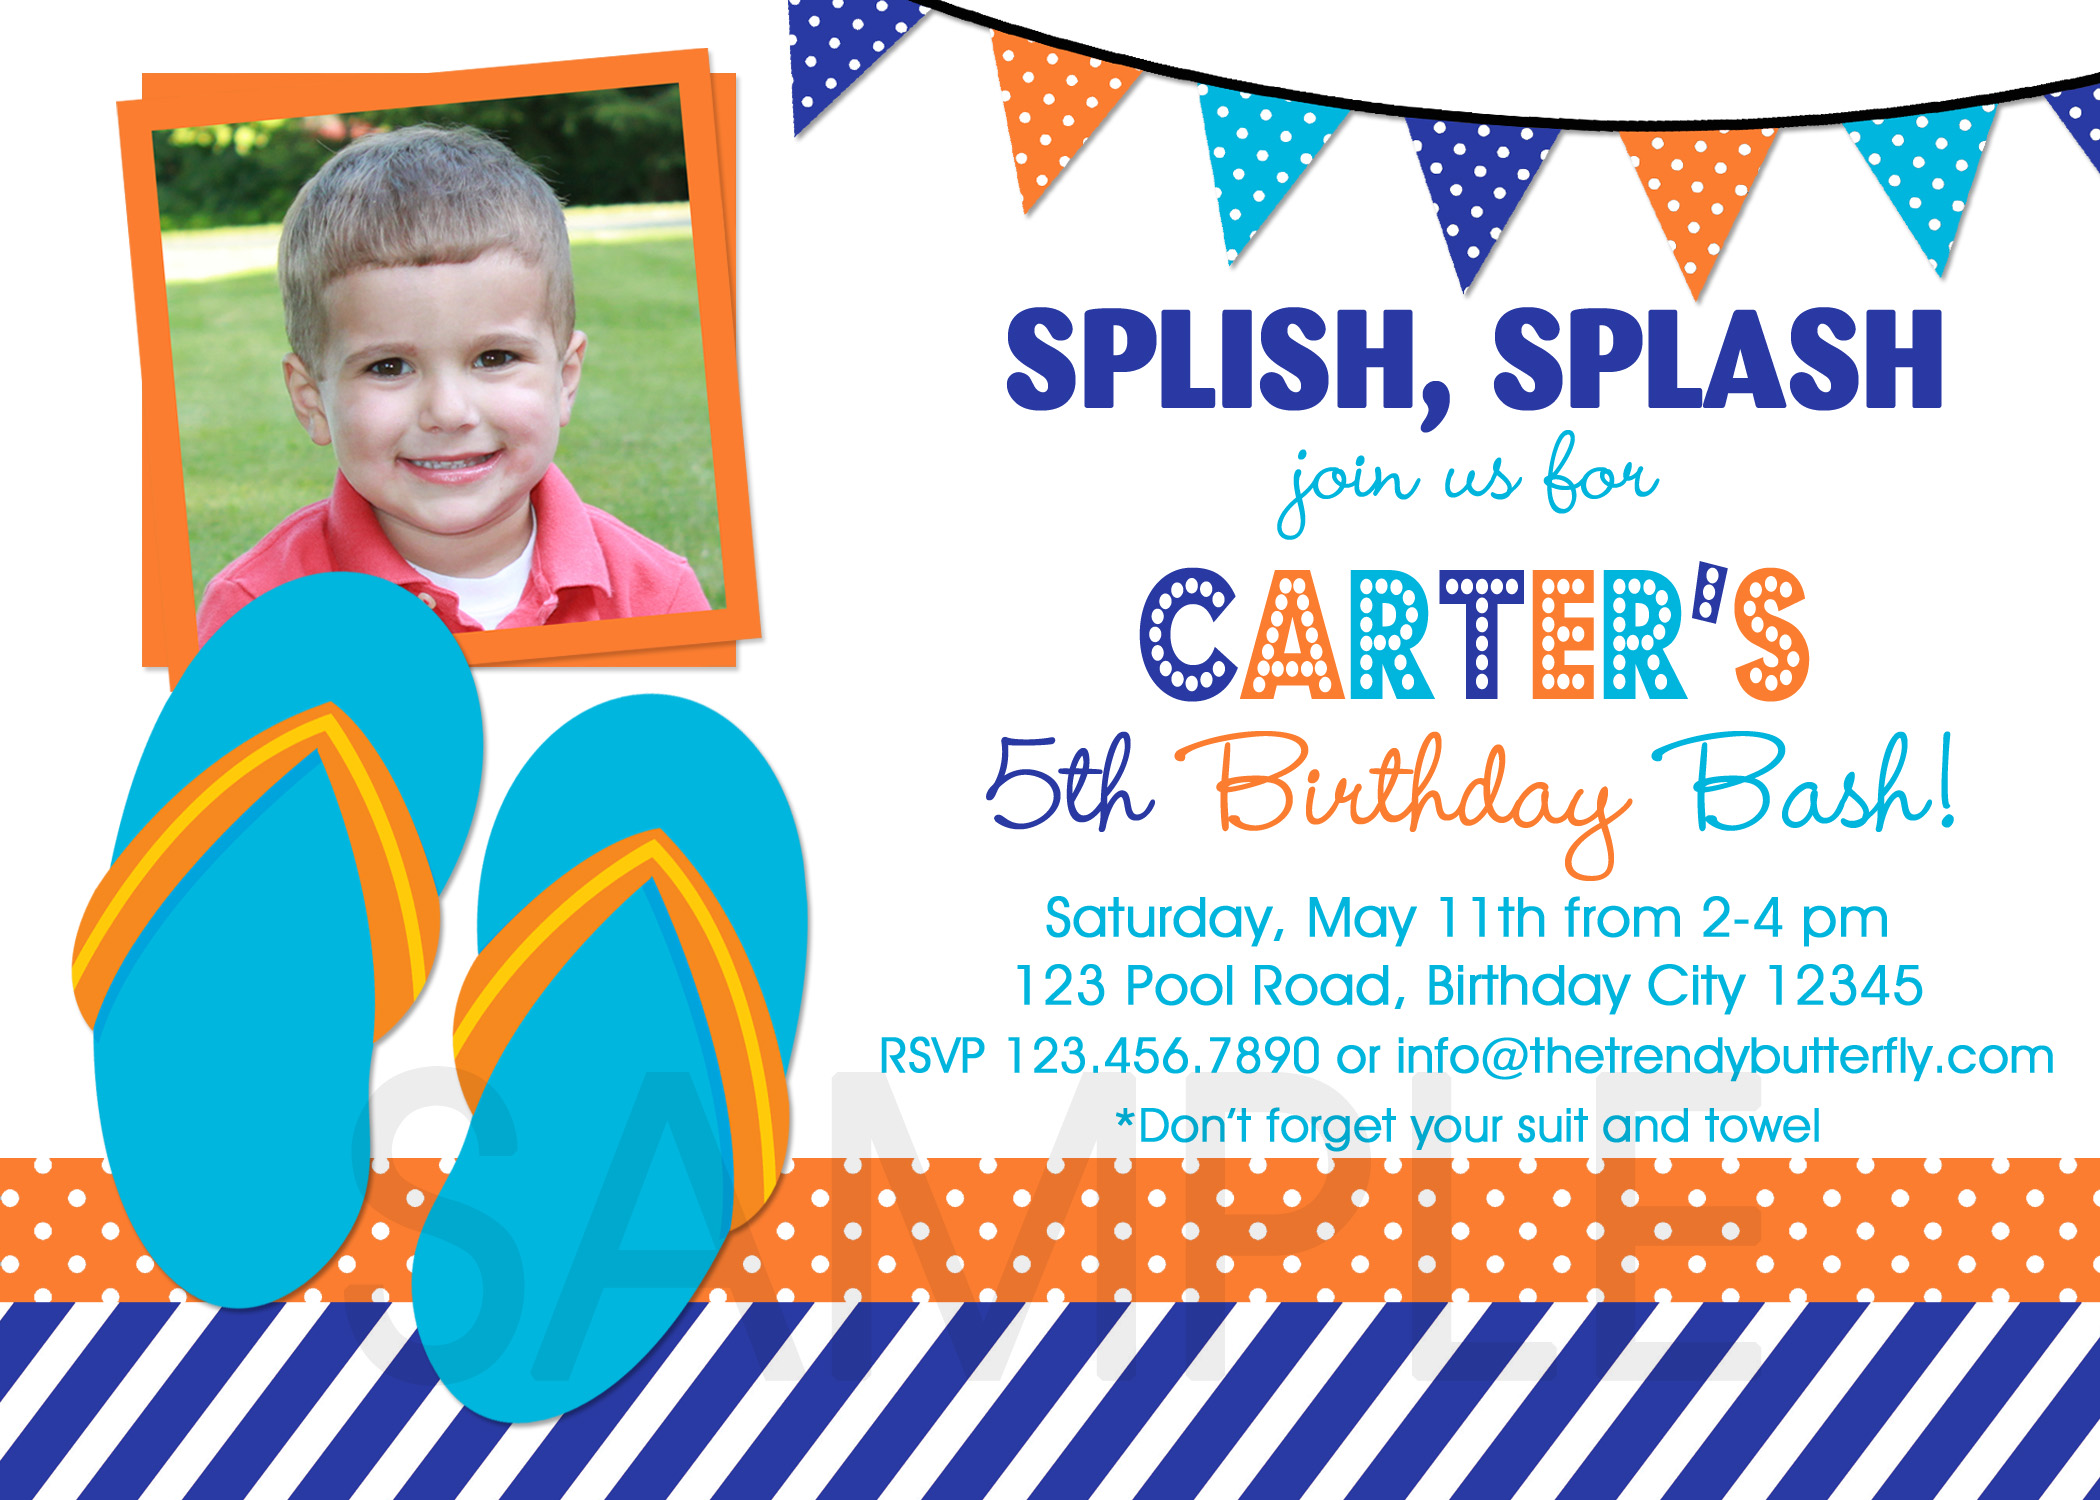 Child birthday invitations northurthwall child birthday invitations stopboris